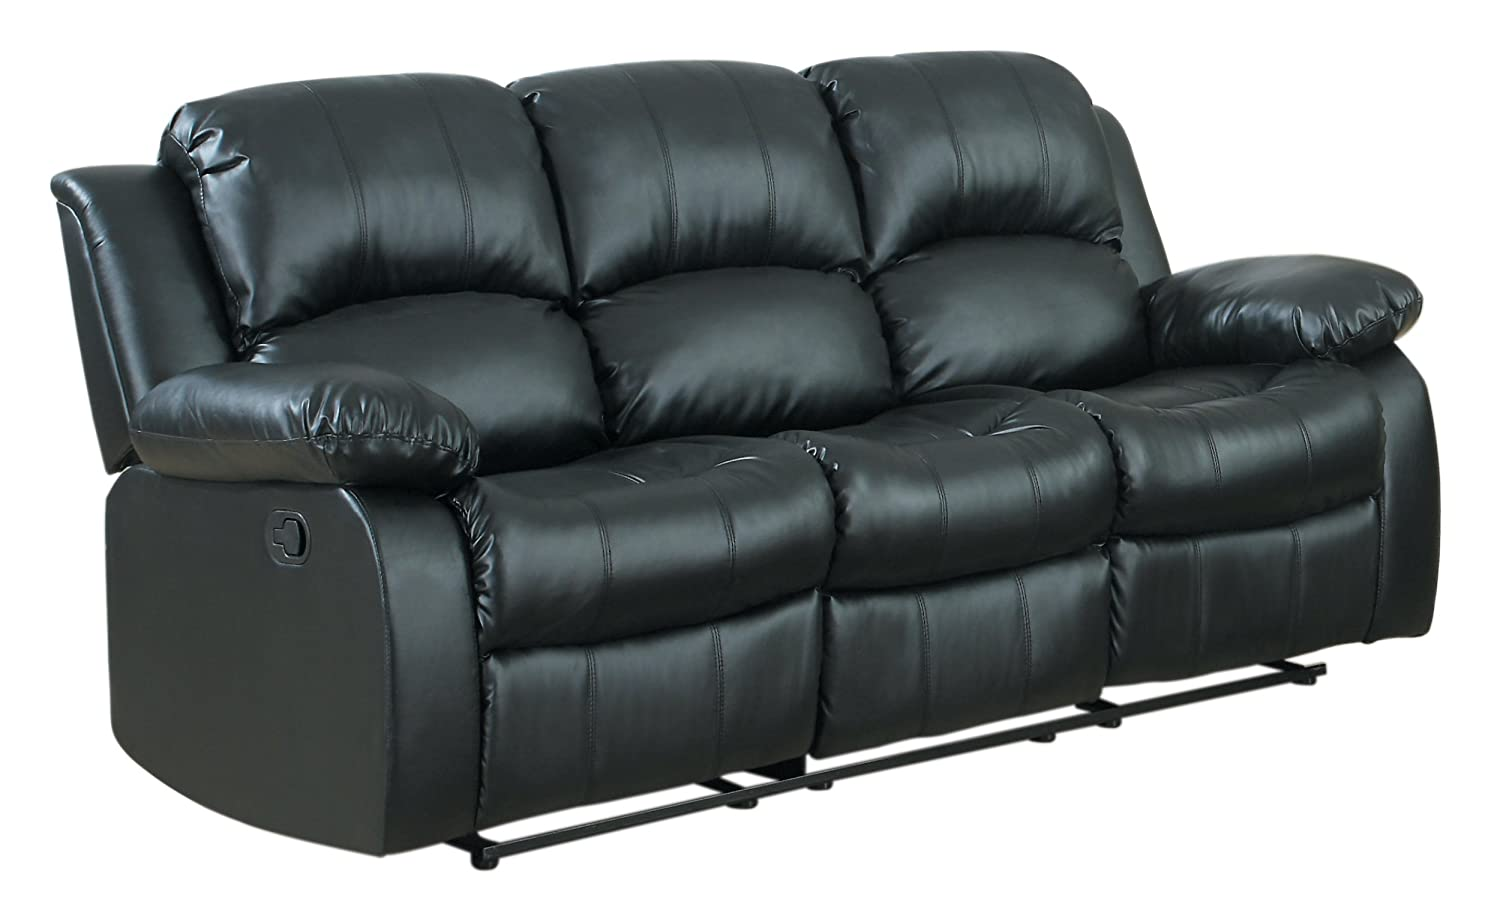 Homelegance Double Reclining Sofa - Black Bonded Leather